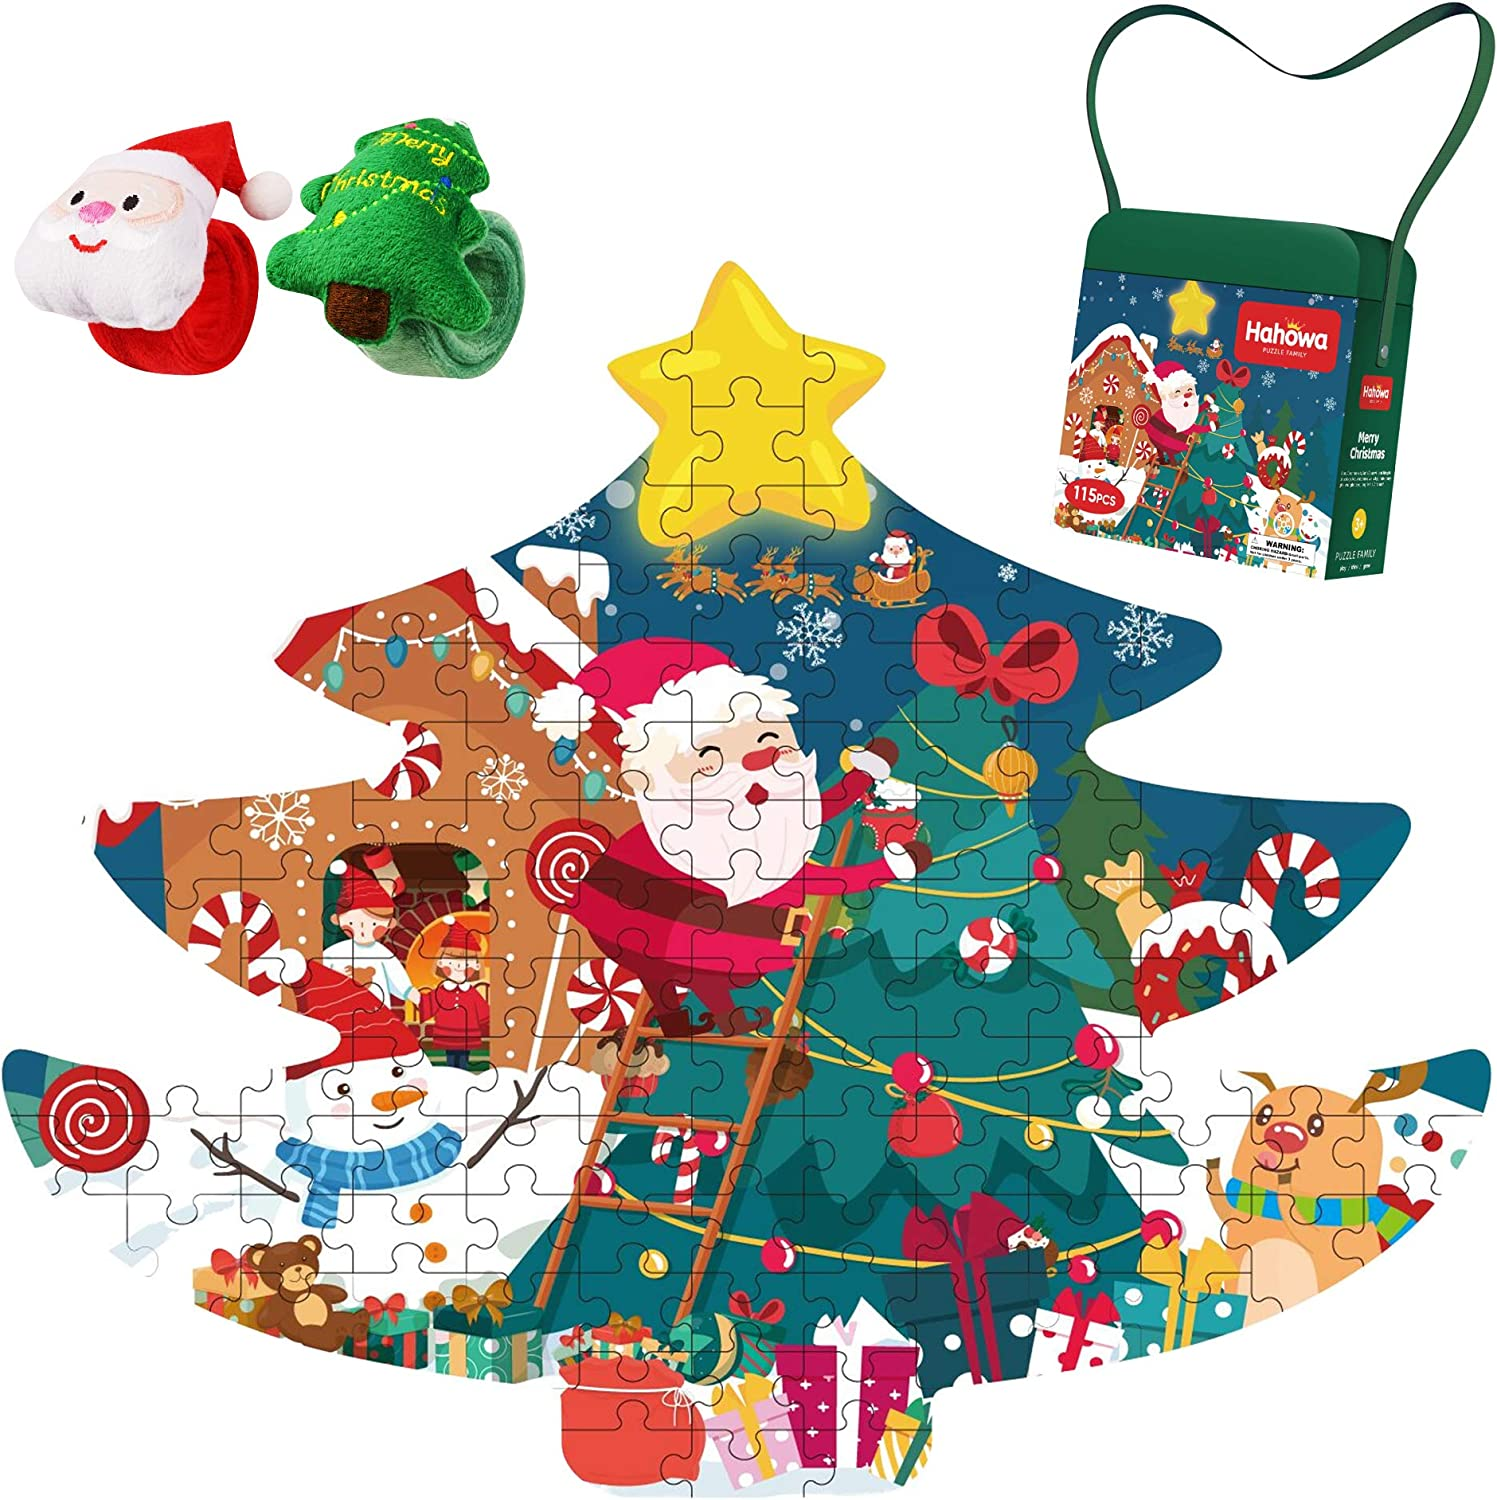 Christmas Puzzles for Kids, 100 Piece Jigsaw Puzzles with Gift Box, Christmas Theme, Ideas Toys for Christmas, Educational Toy for Kids, Santa Claus & Christmas Tree & Reindeer